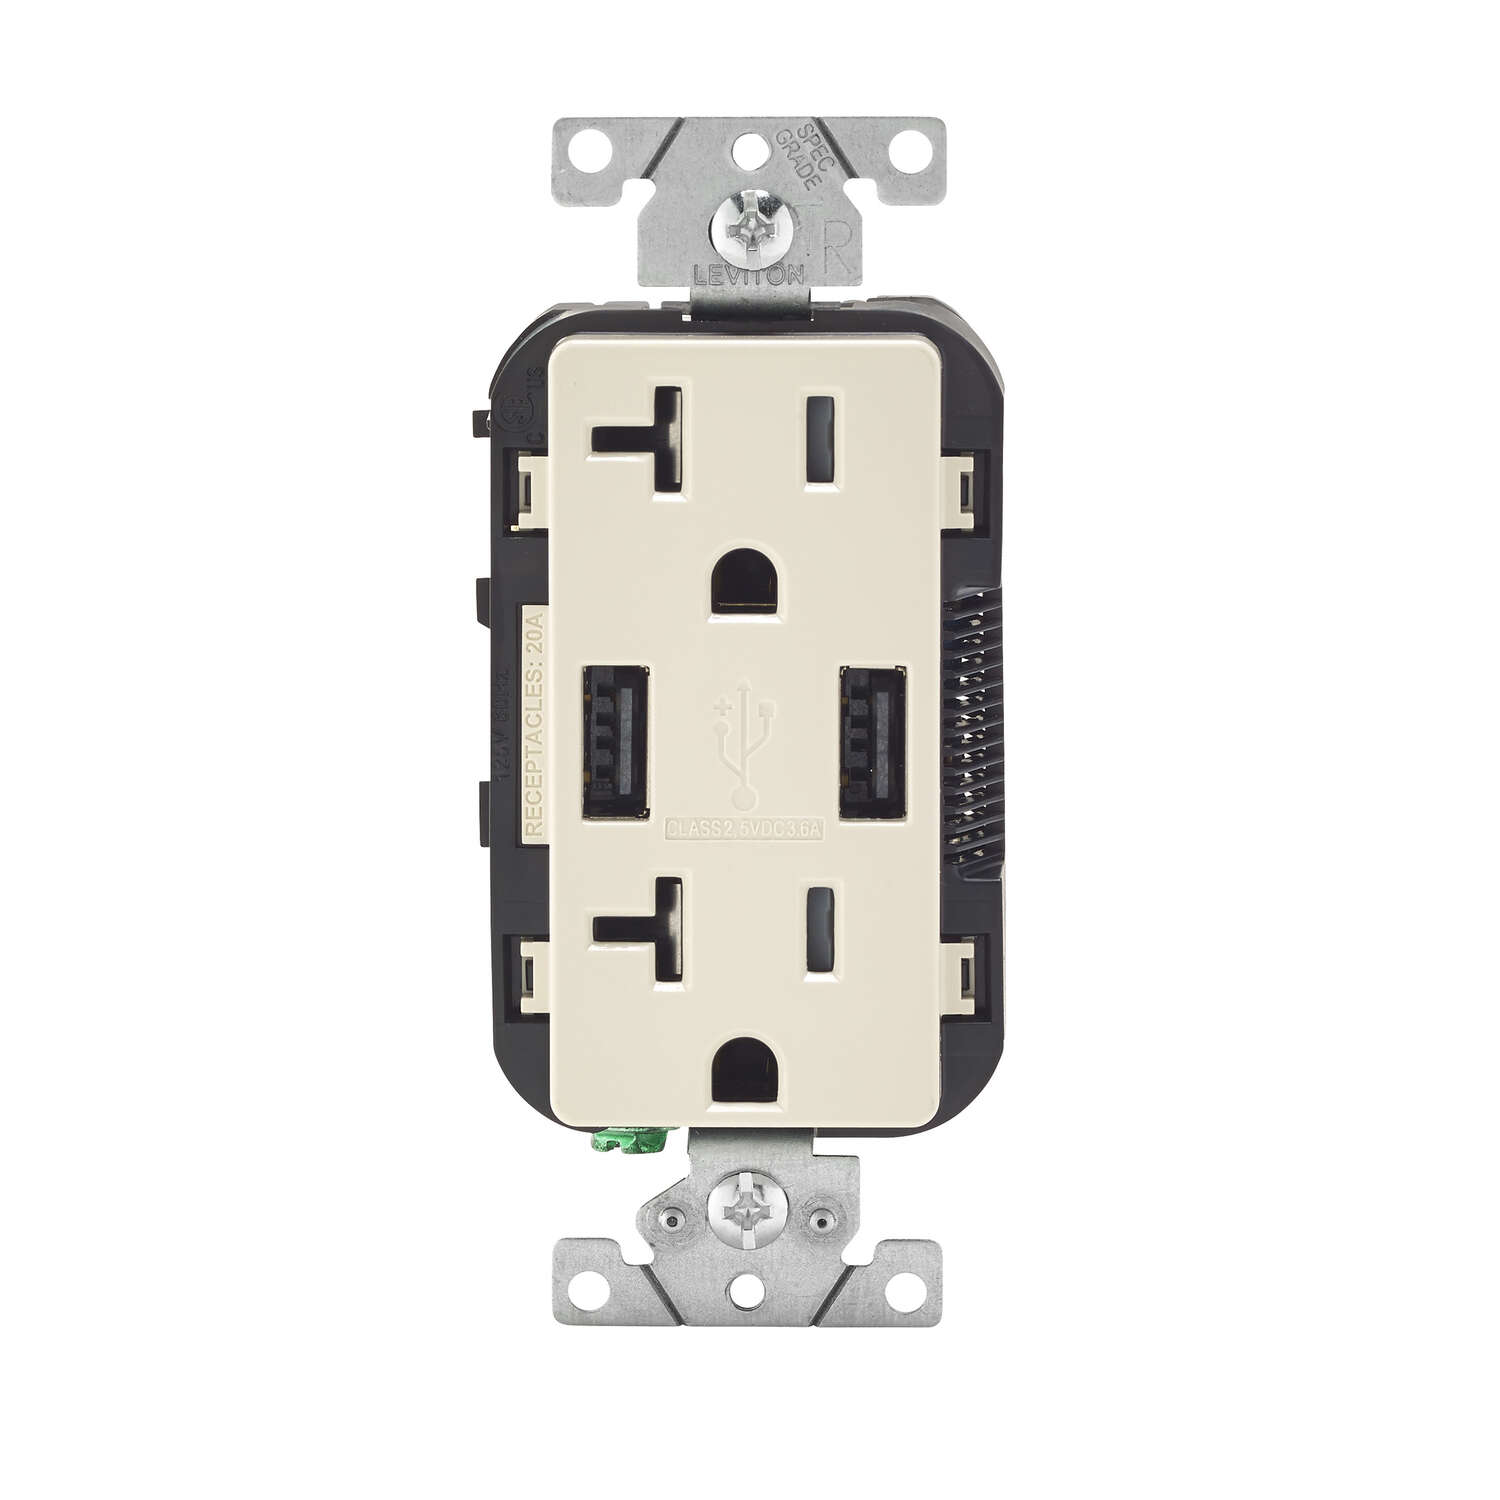 Leviton Decora 20 amps 125 volt Light Almond Outlet and USB Charger 5-20R